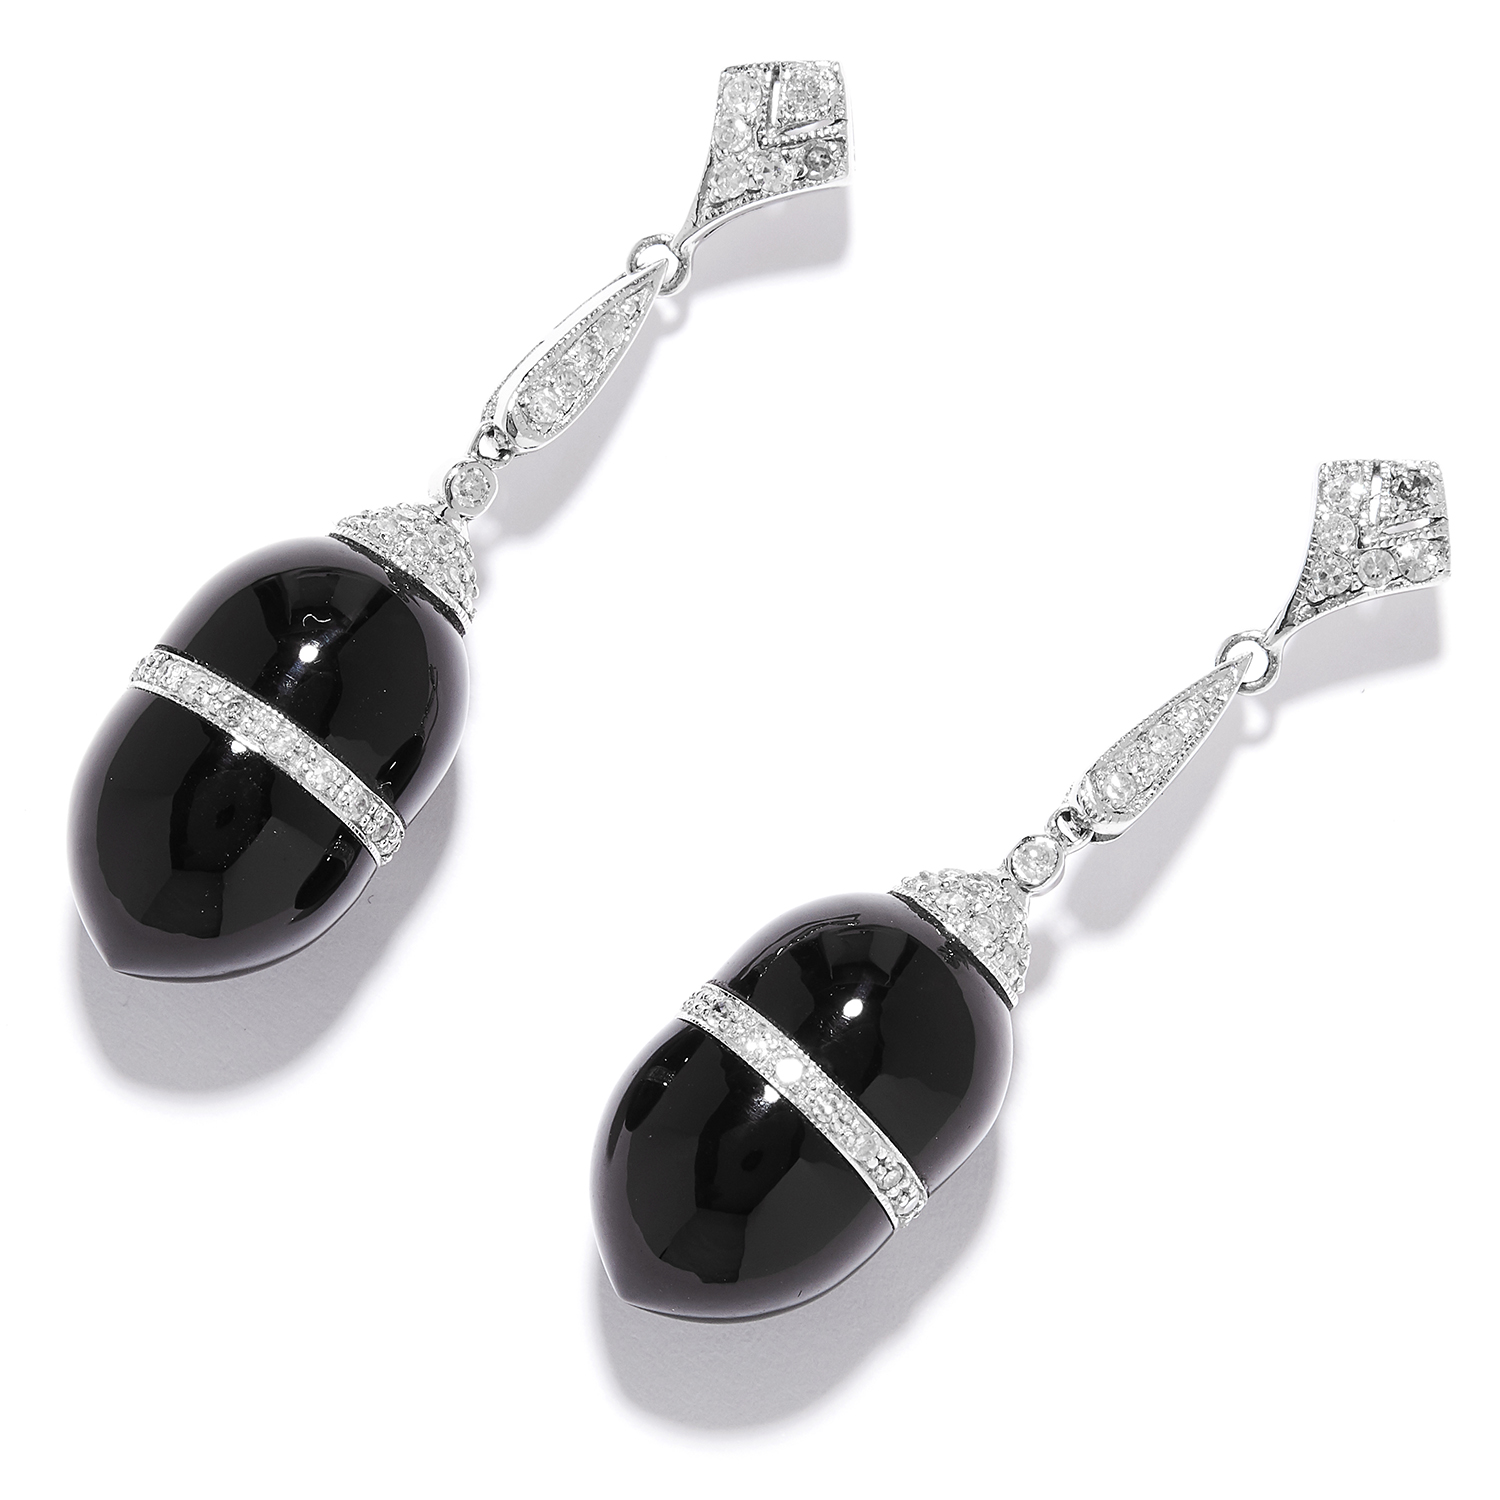 ONYX AND DIAMOND EARRINGS in platinum or white gold, the polished onyx with a central band of